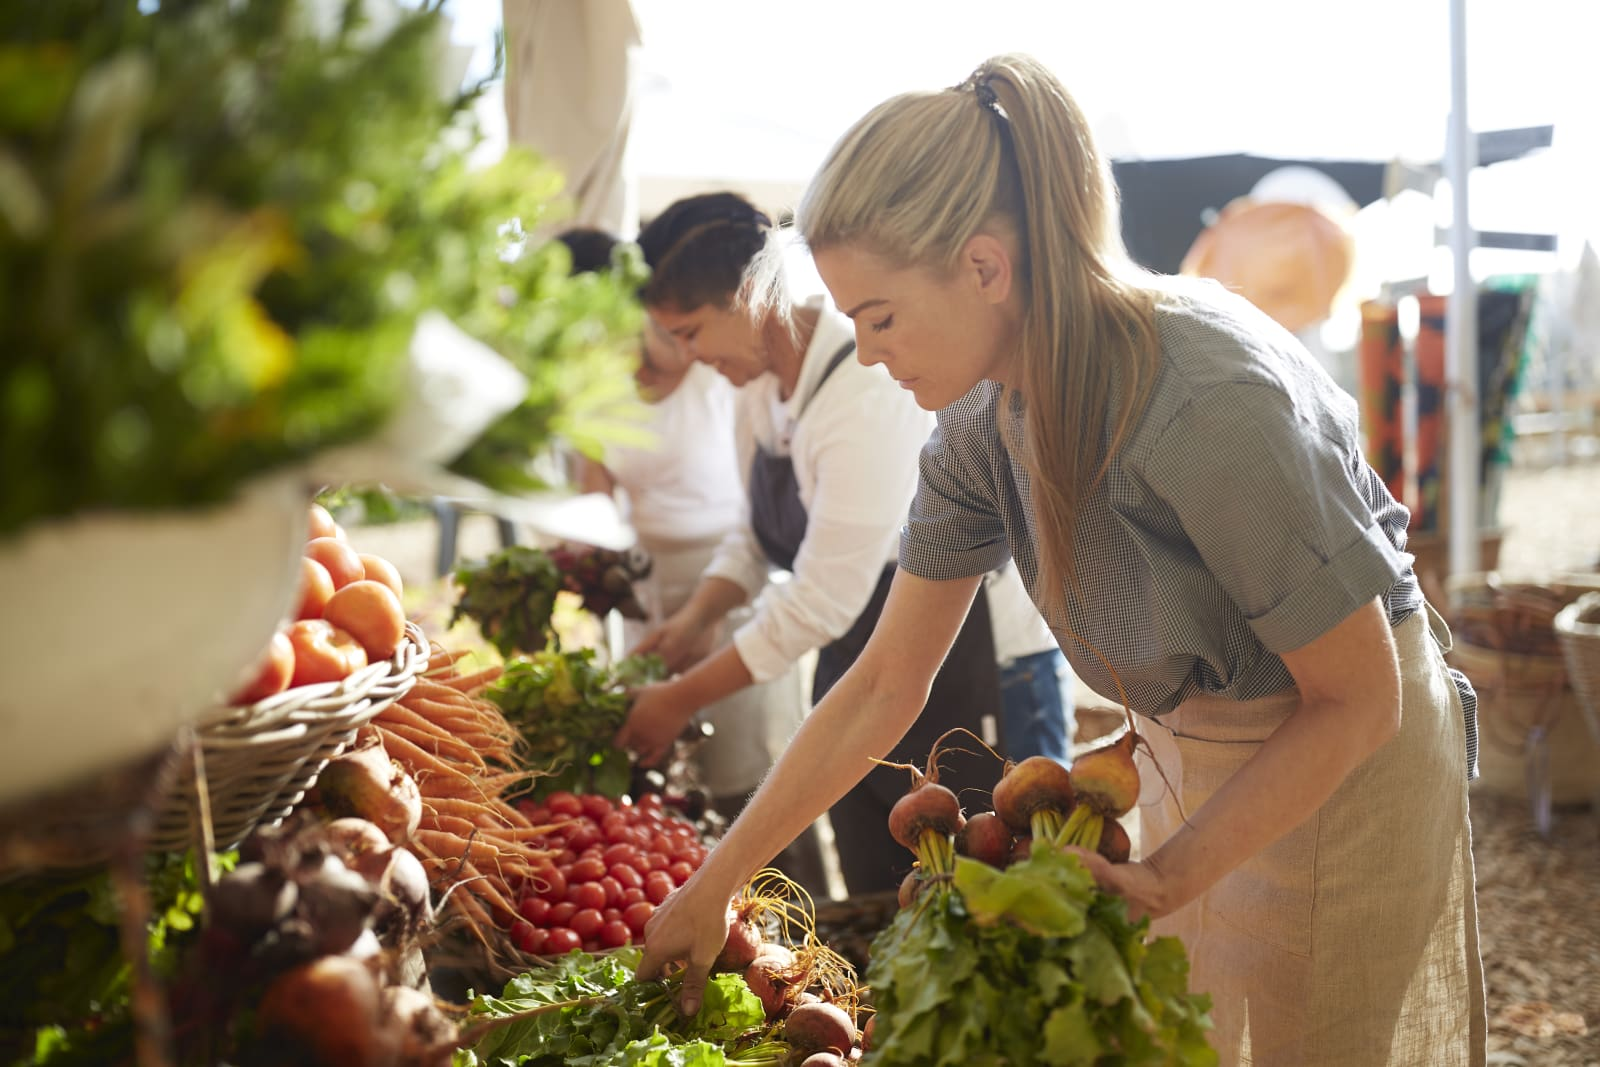 Farmers markets have exploded in popularity in recent years.